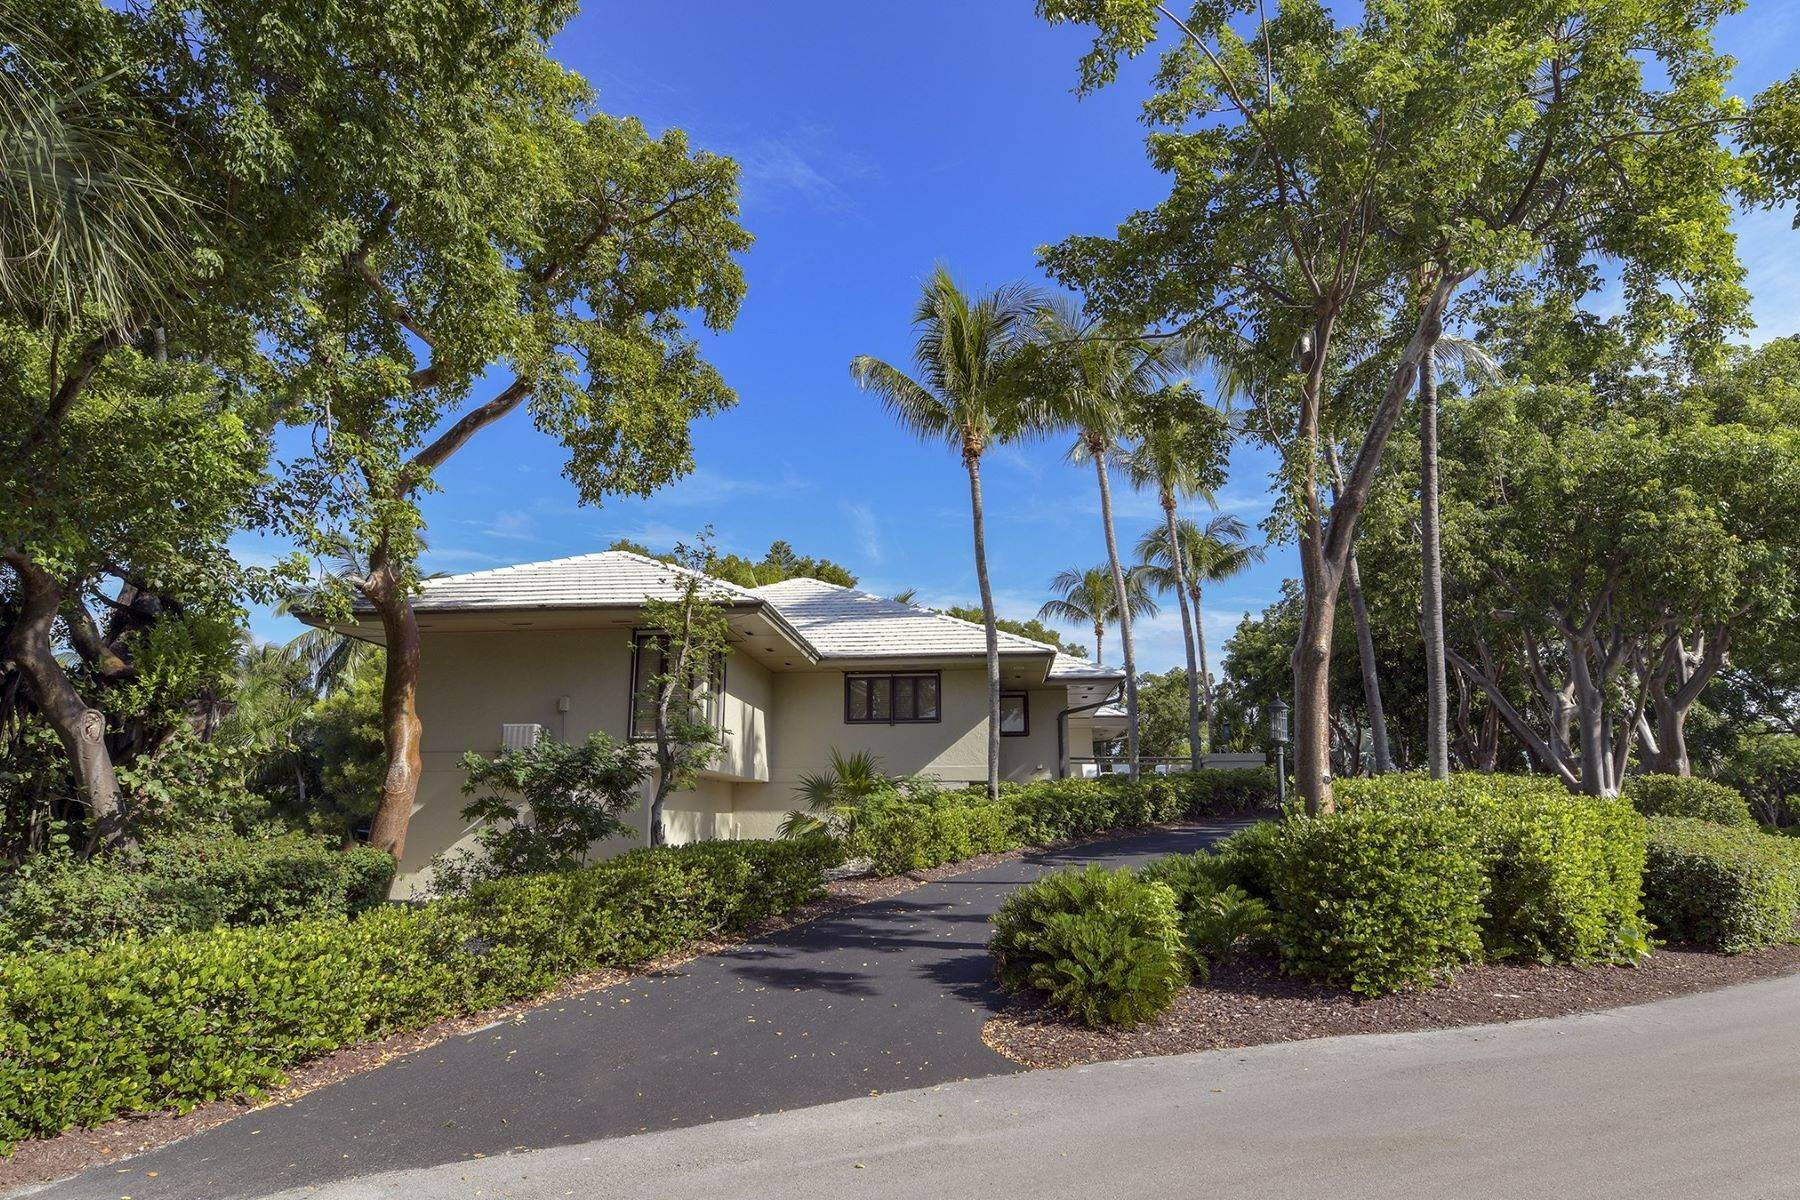 48. Property for Sale at 10 Cannon Point, Key Largo, FL Key Largo, Florida 33037 United States